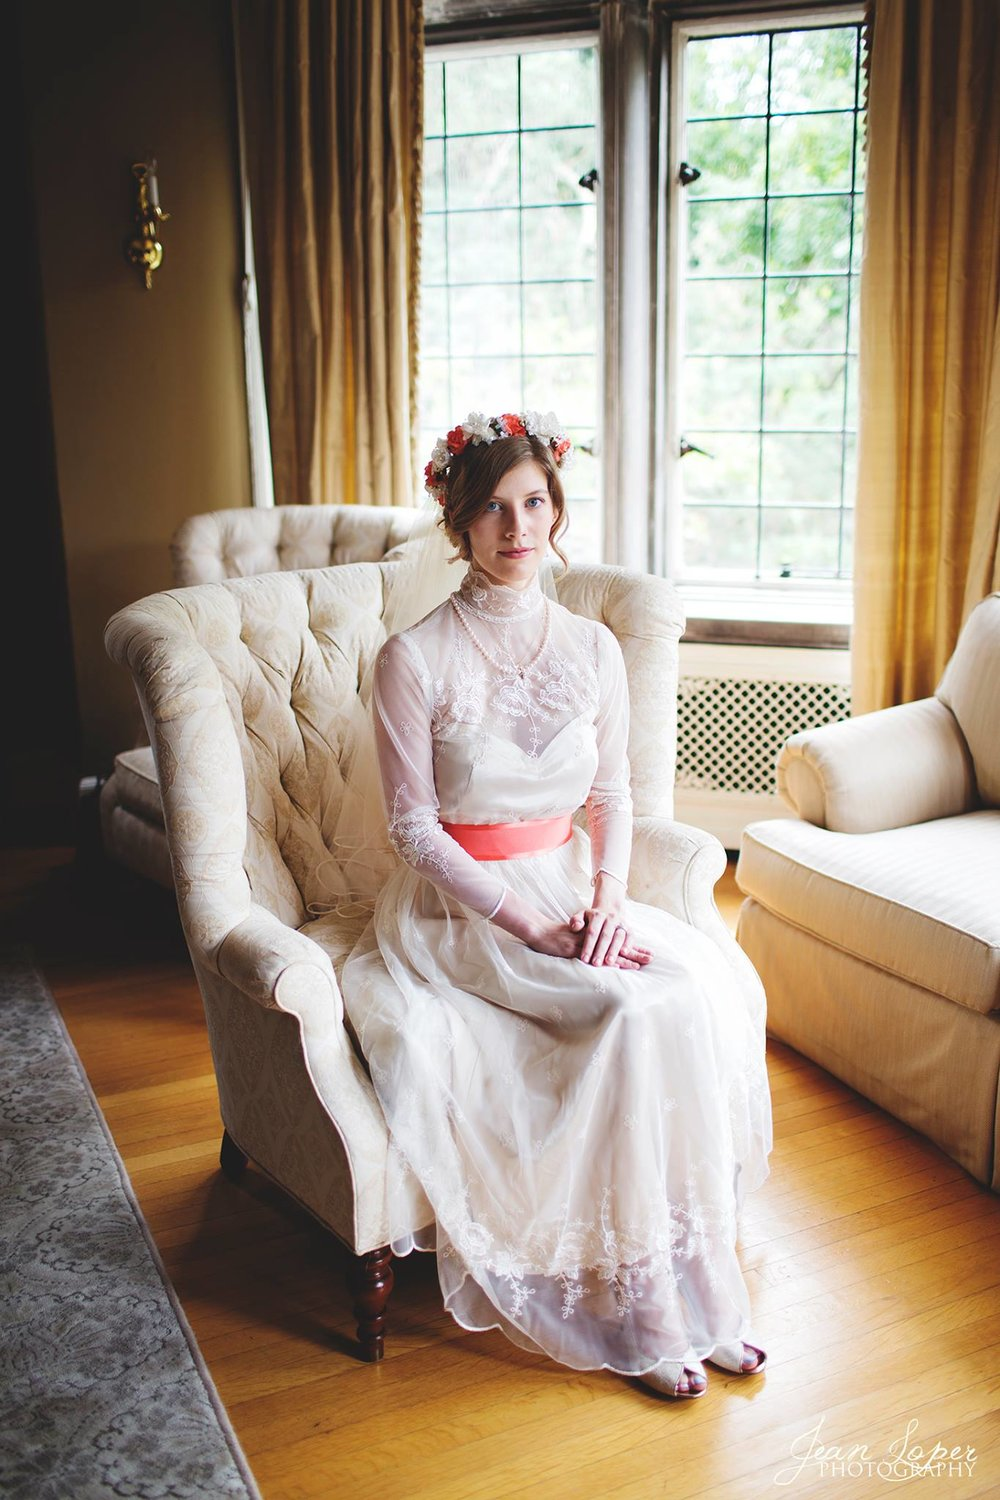 Indianapolis, Indiana // Originally purchased and worn by my mom and aunt. I up-cycled the dress and wore it for my wedding day. Belt designed and created by Koledon Lambright.  August 2014